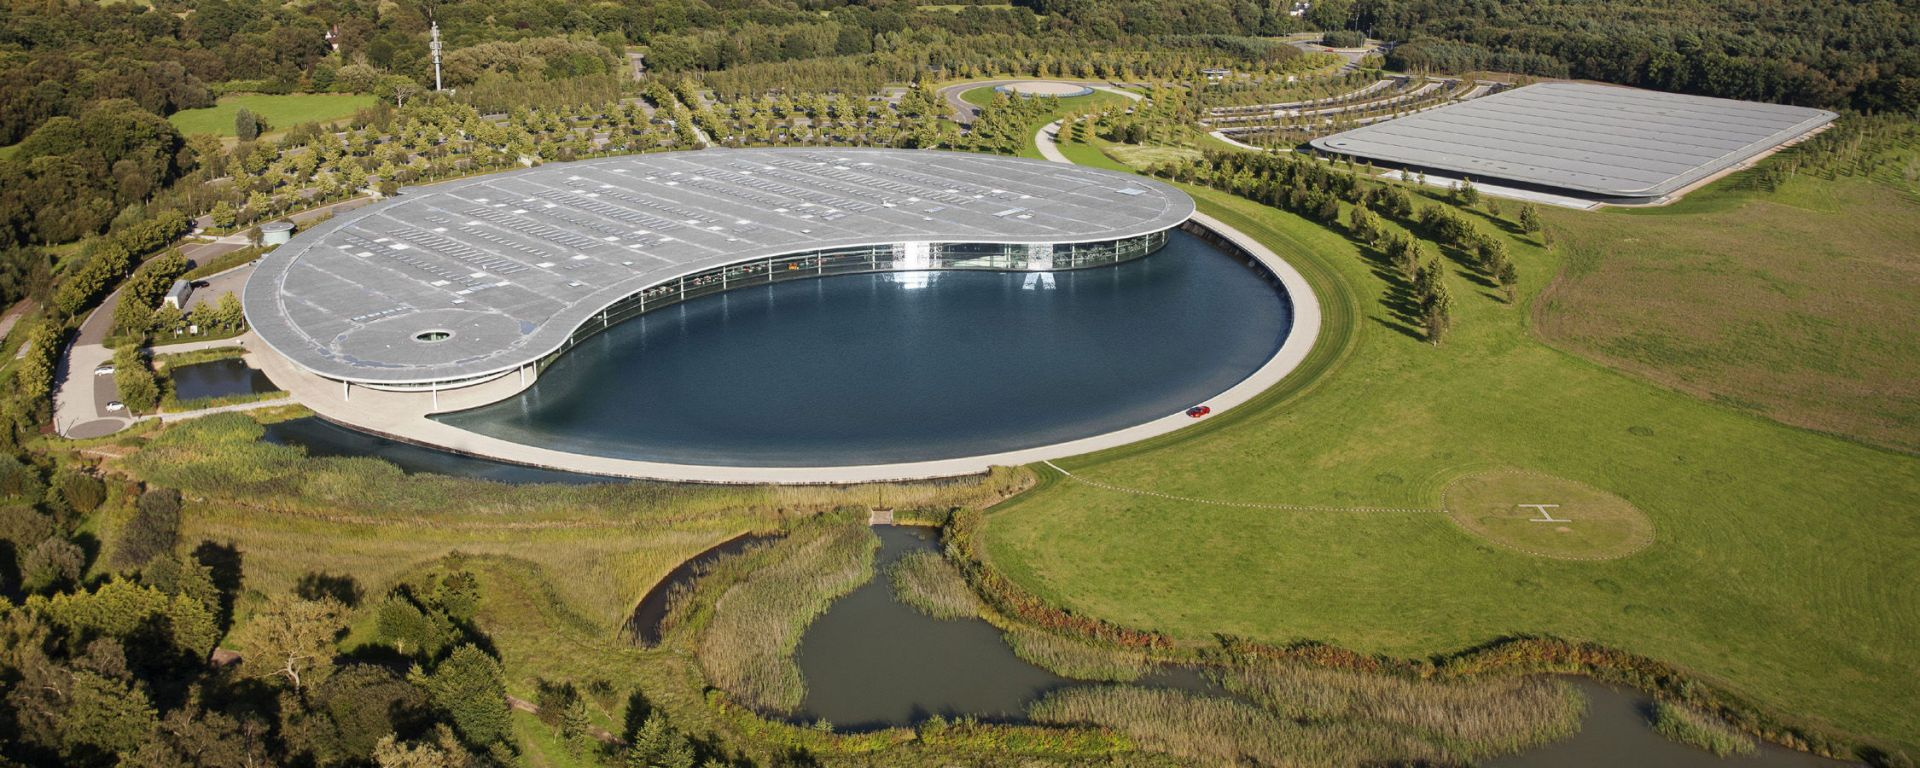 McLaren Technology Center a Woking, Surrey, UK